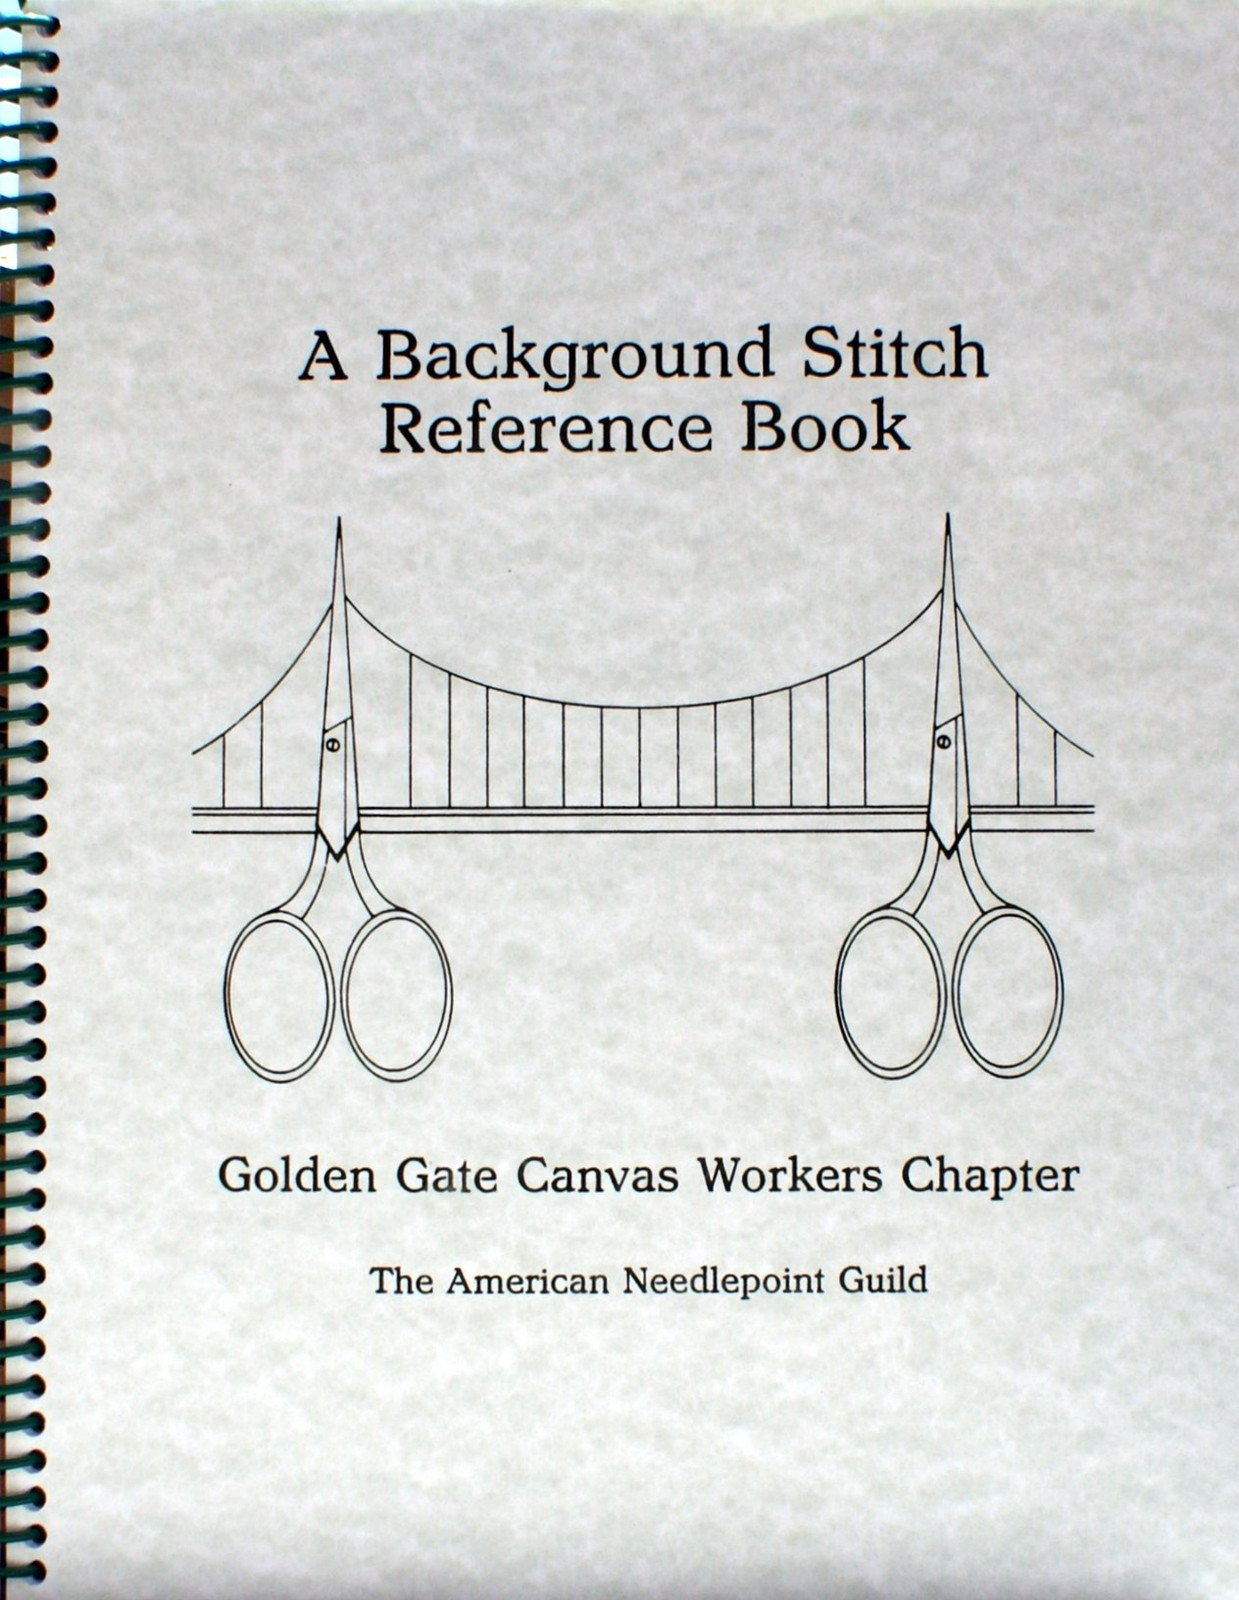 A Background Stitch Reference Book — Book Review